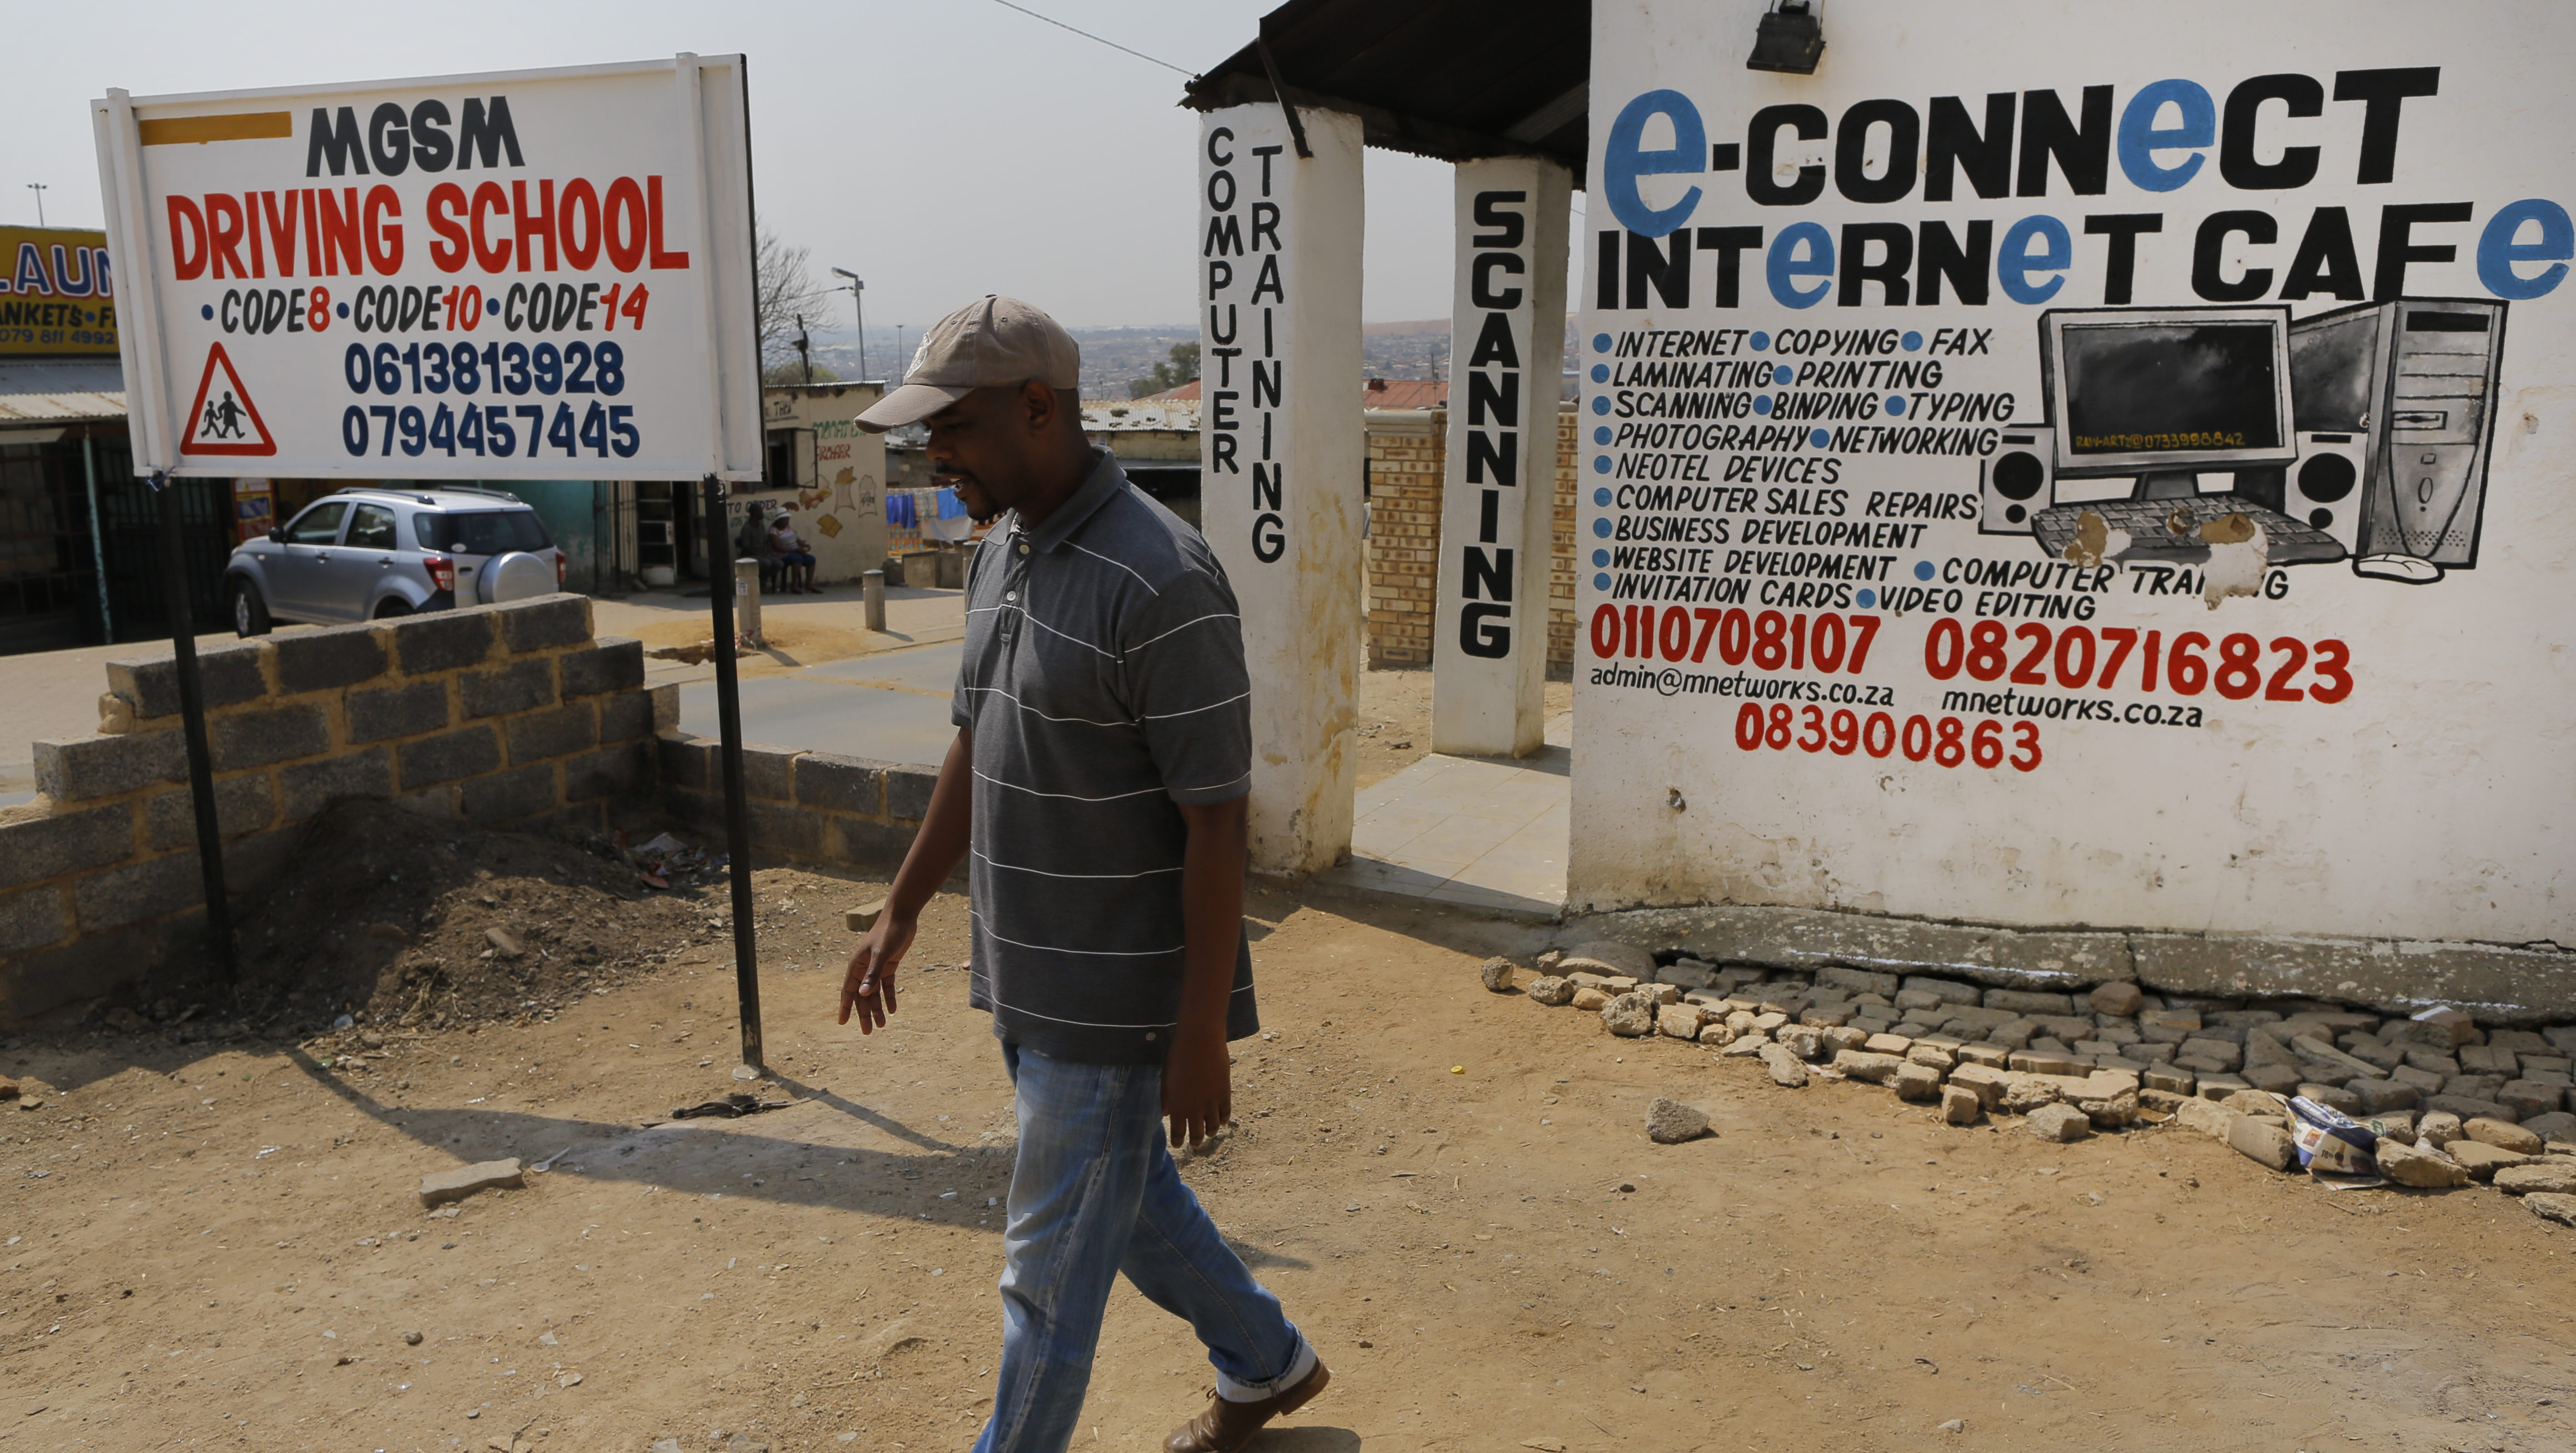 African countries have the slowest internet speeds, says a new